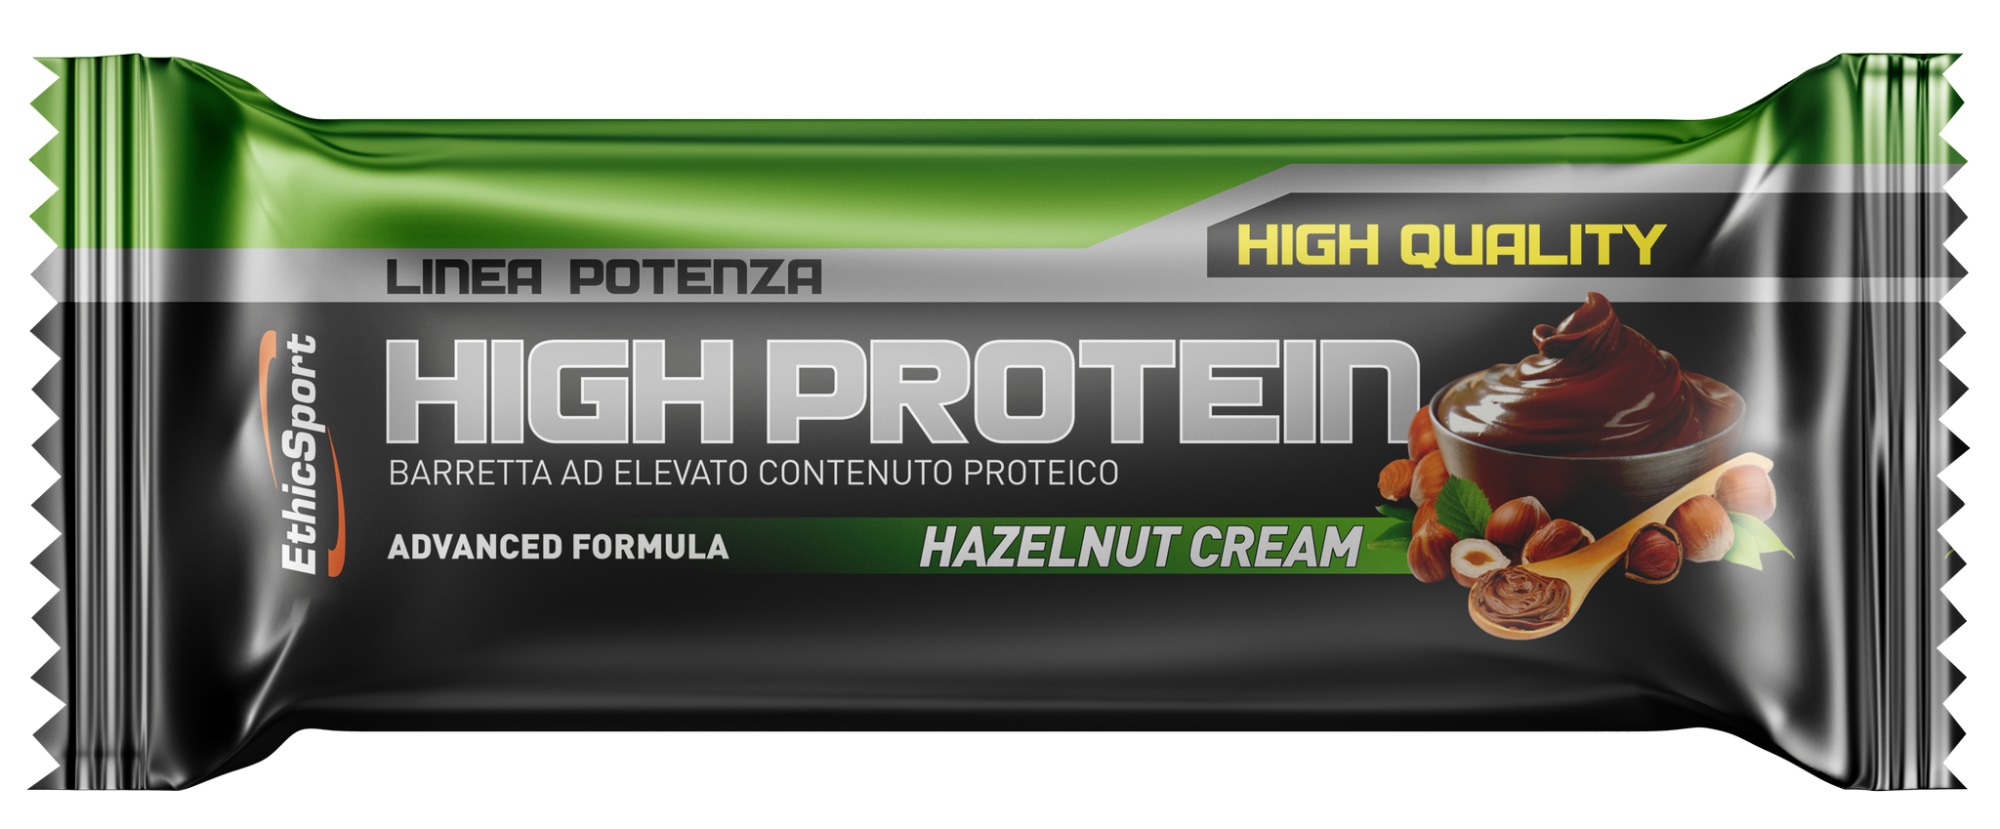 Which Food Categories Contribute High Quality Protein